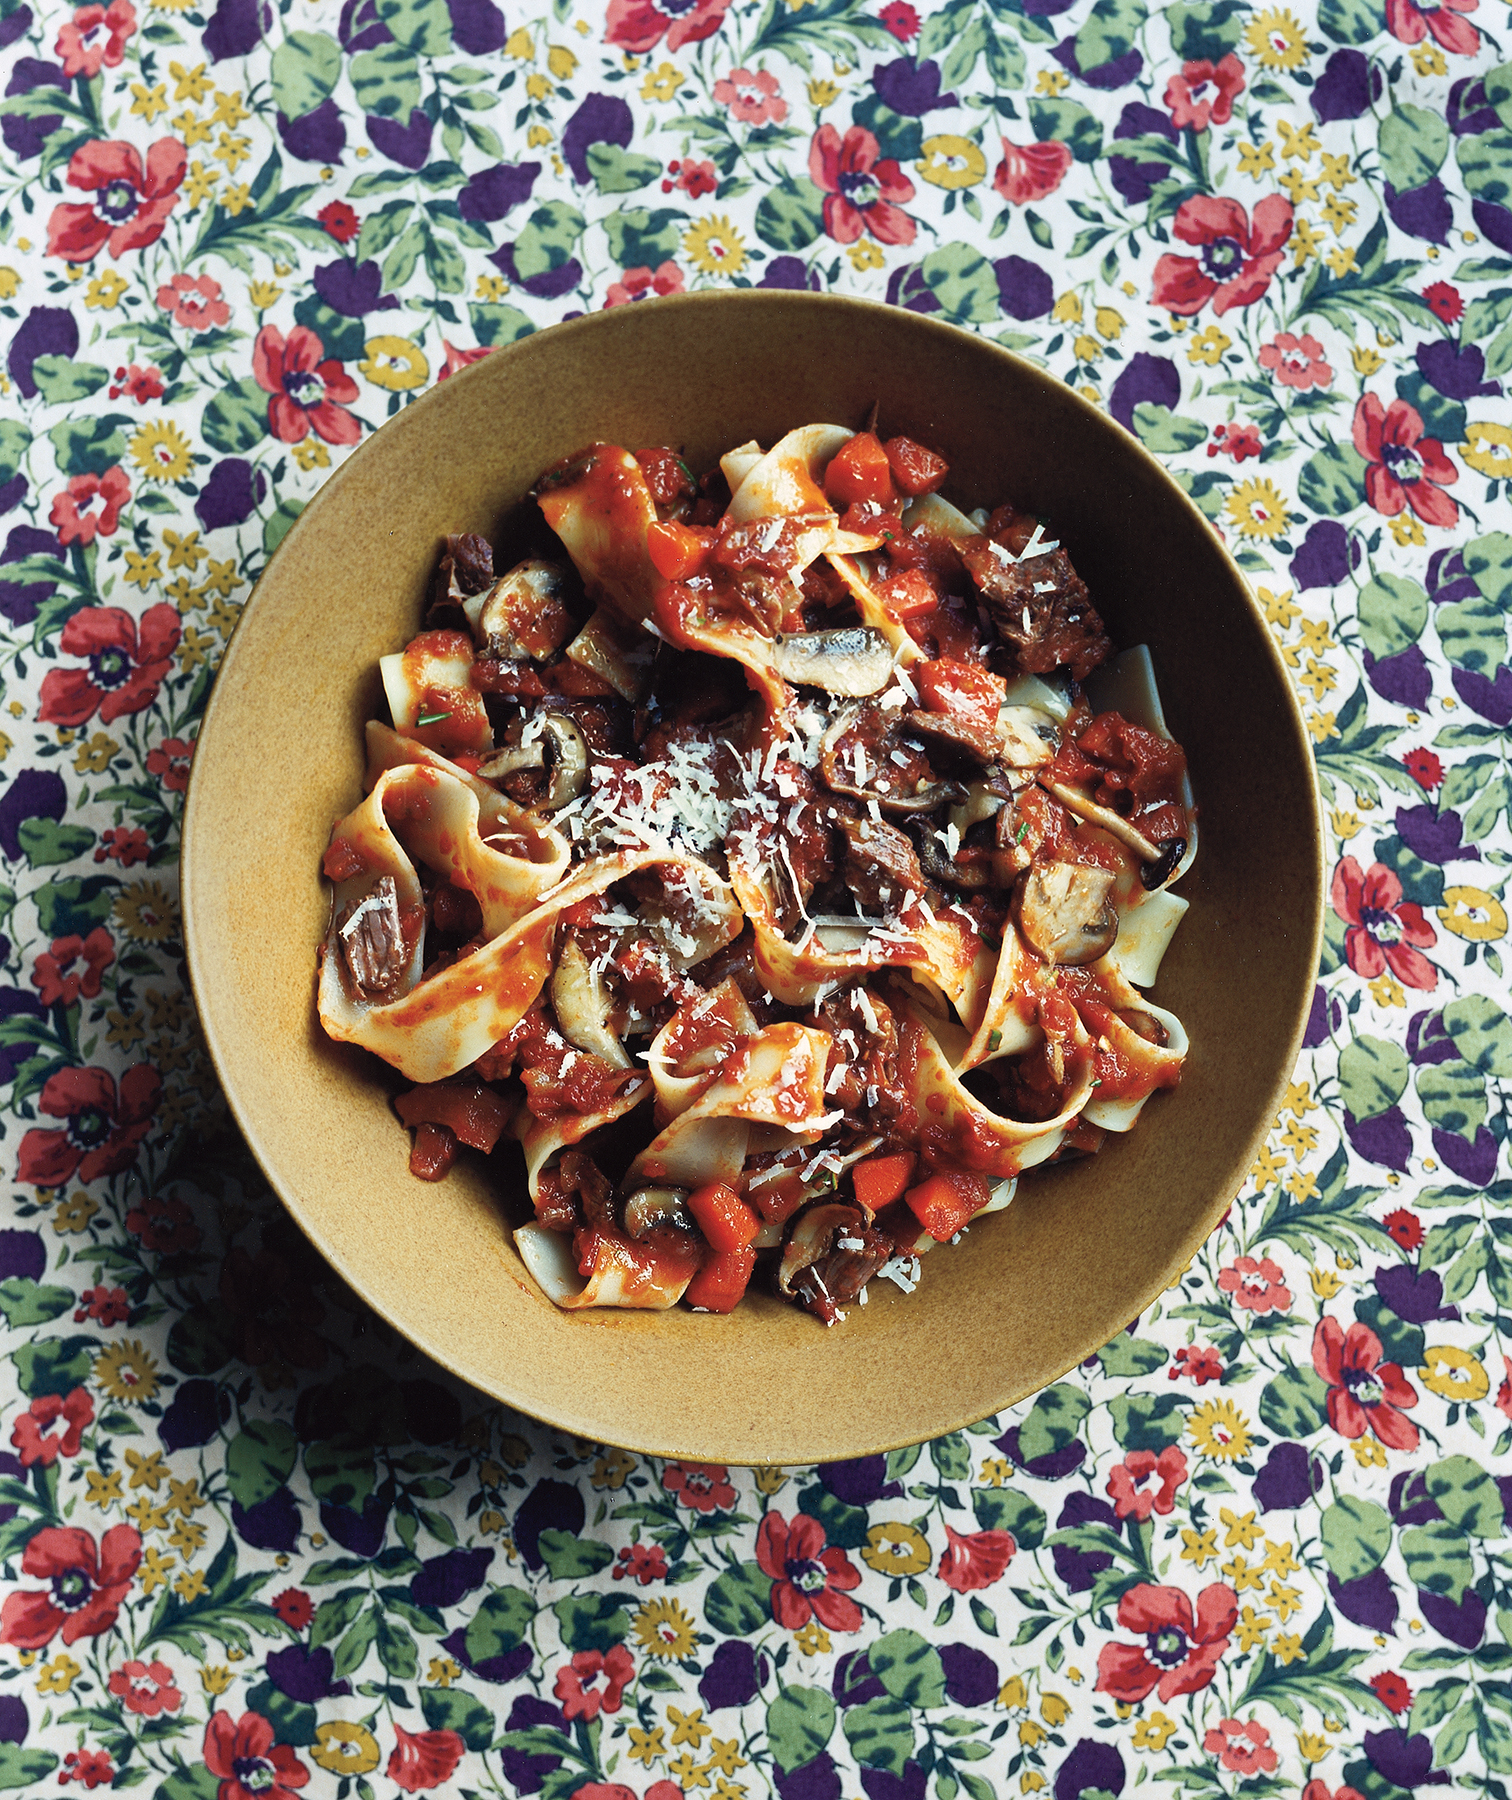 Comfort Food in a Bowl: 6 Warming Recipes